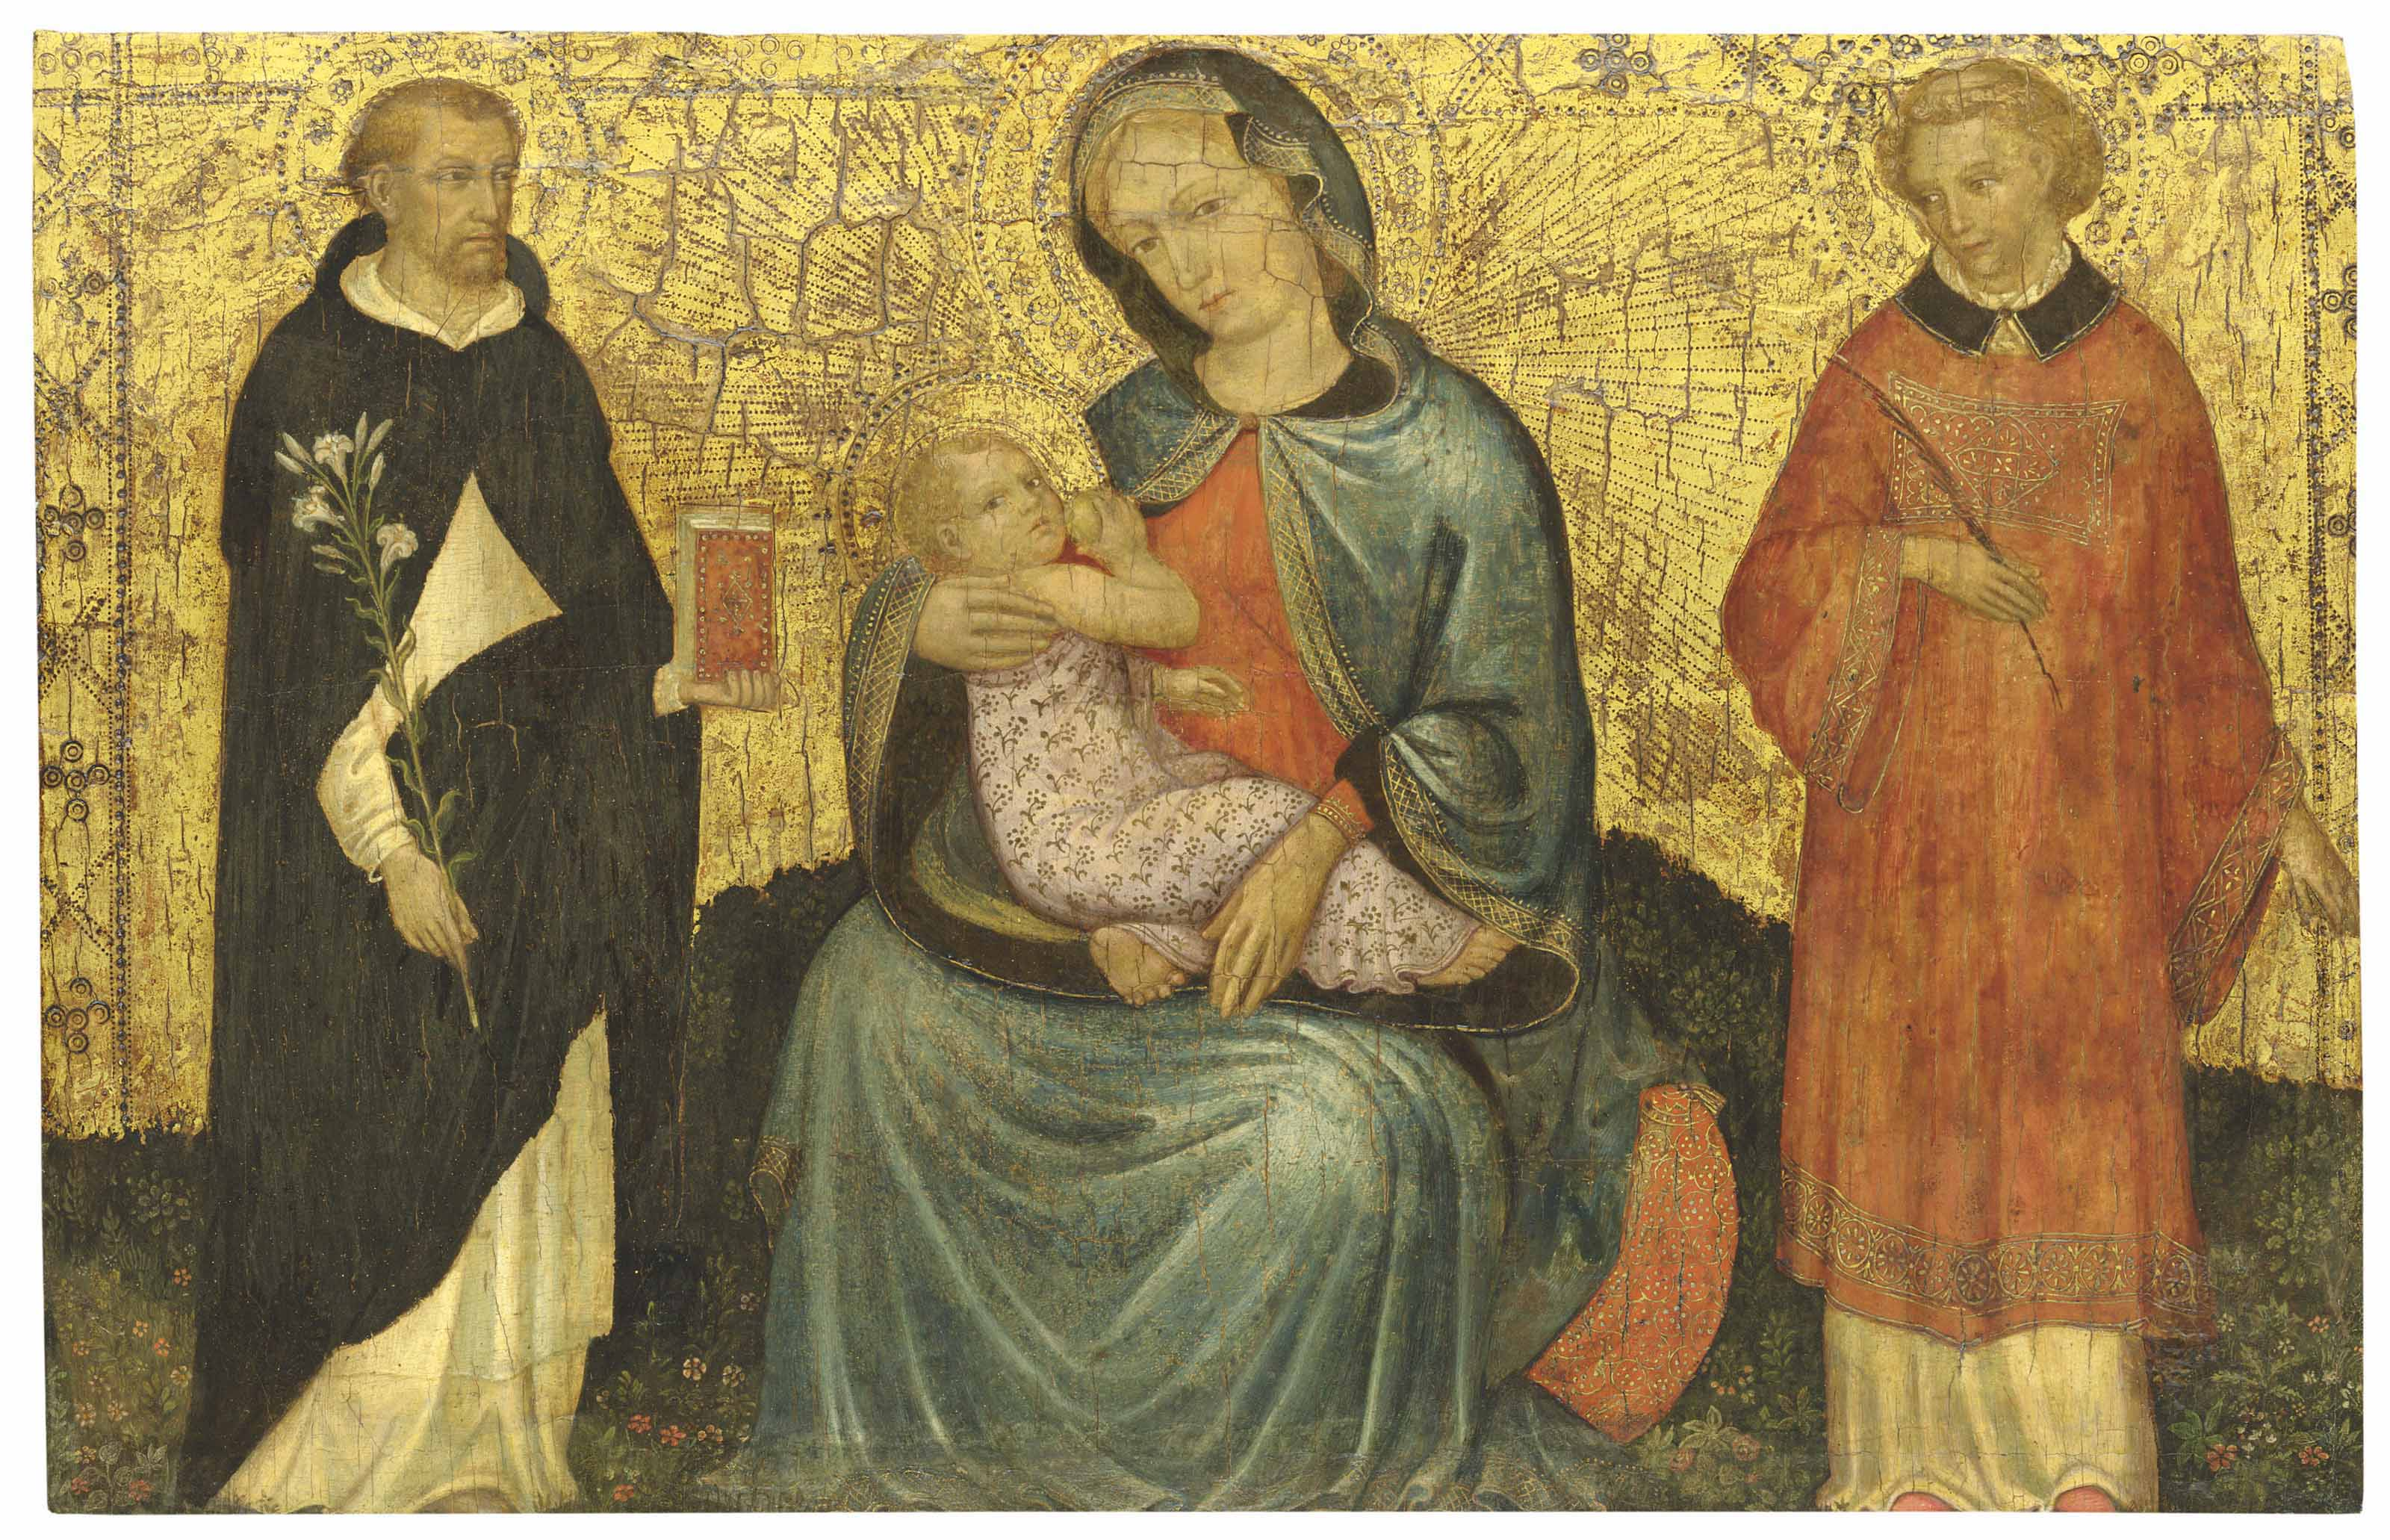 The Madonna of Humility with Saint Dominic and another male saint